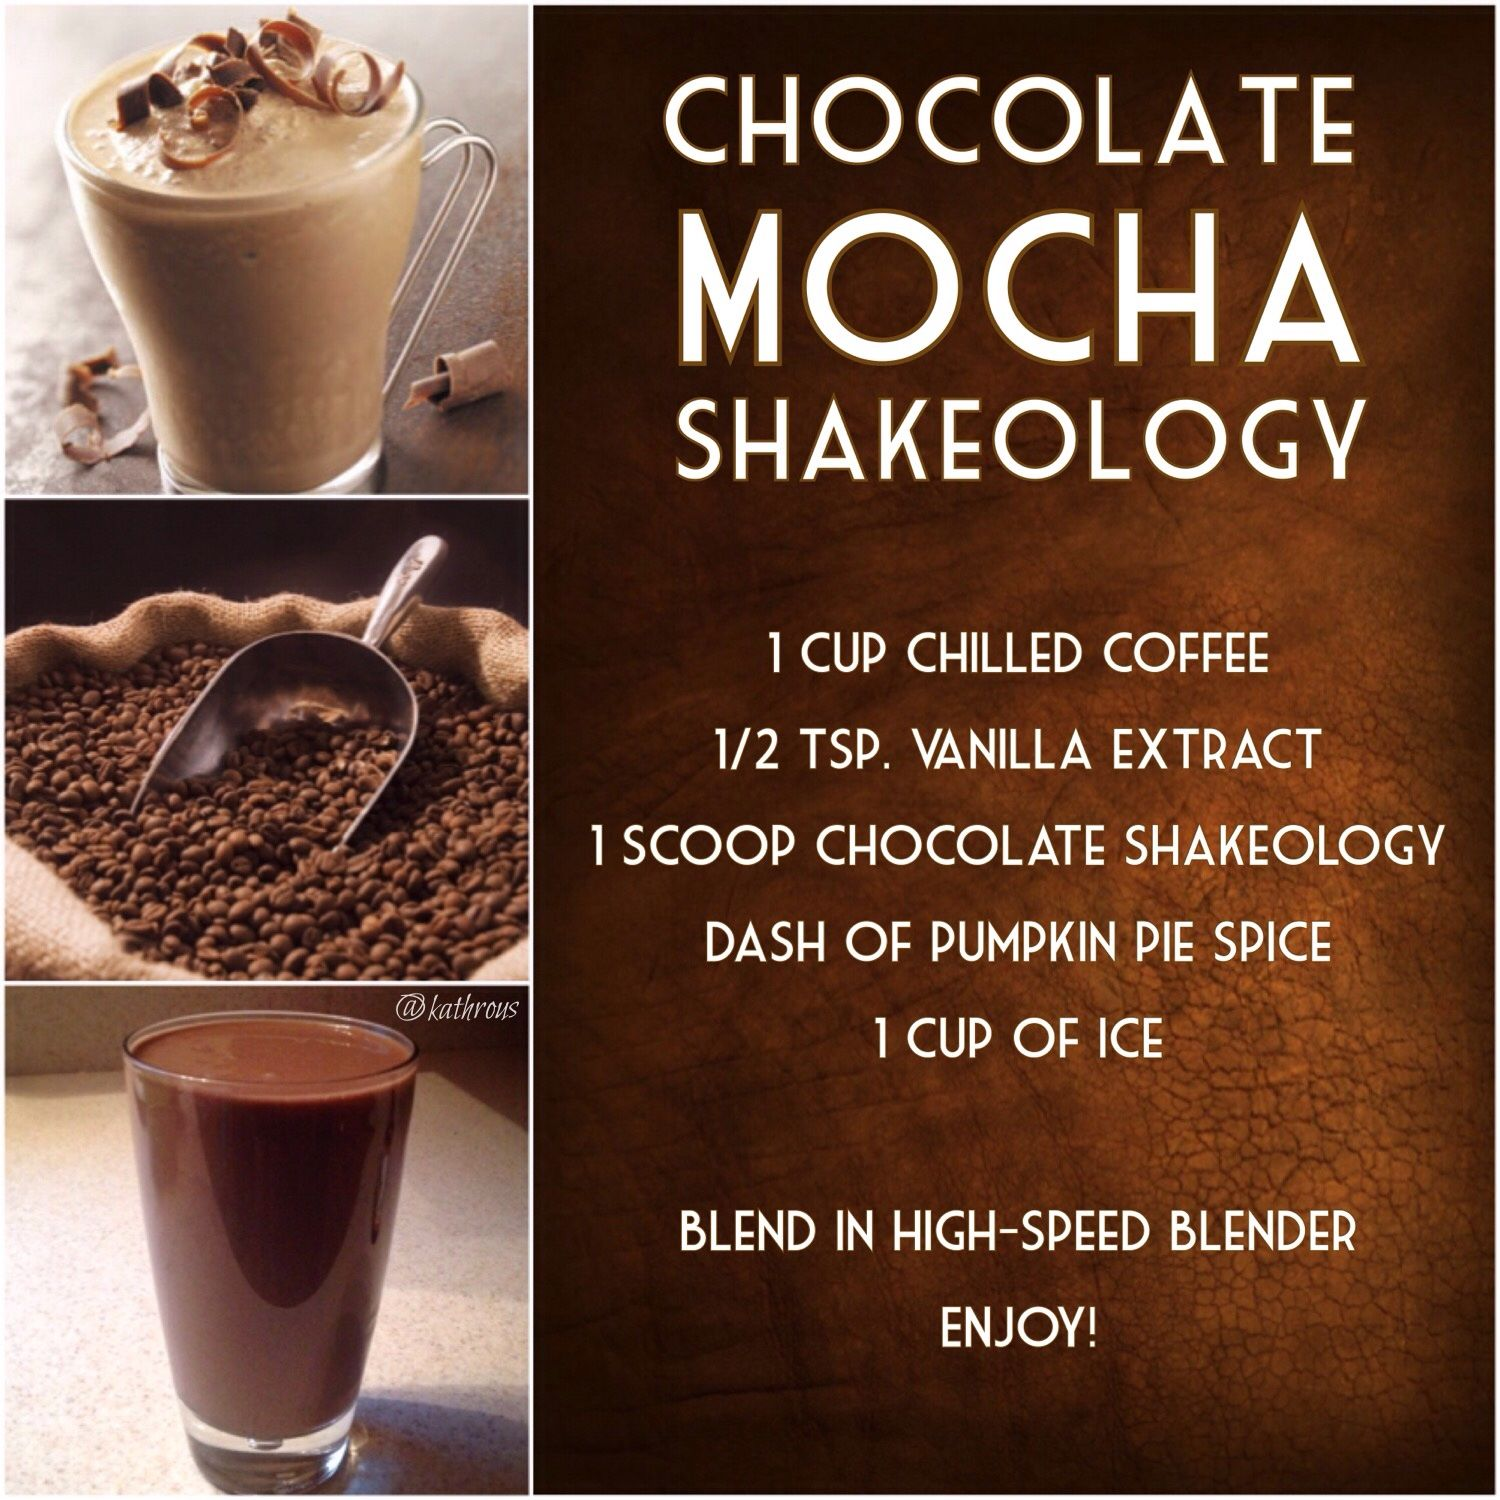 Chocolate Mocha Shakeology | Shakeology, Shakeology flavors and ...